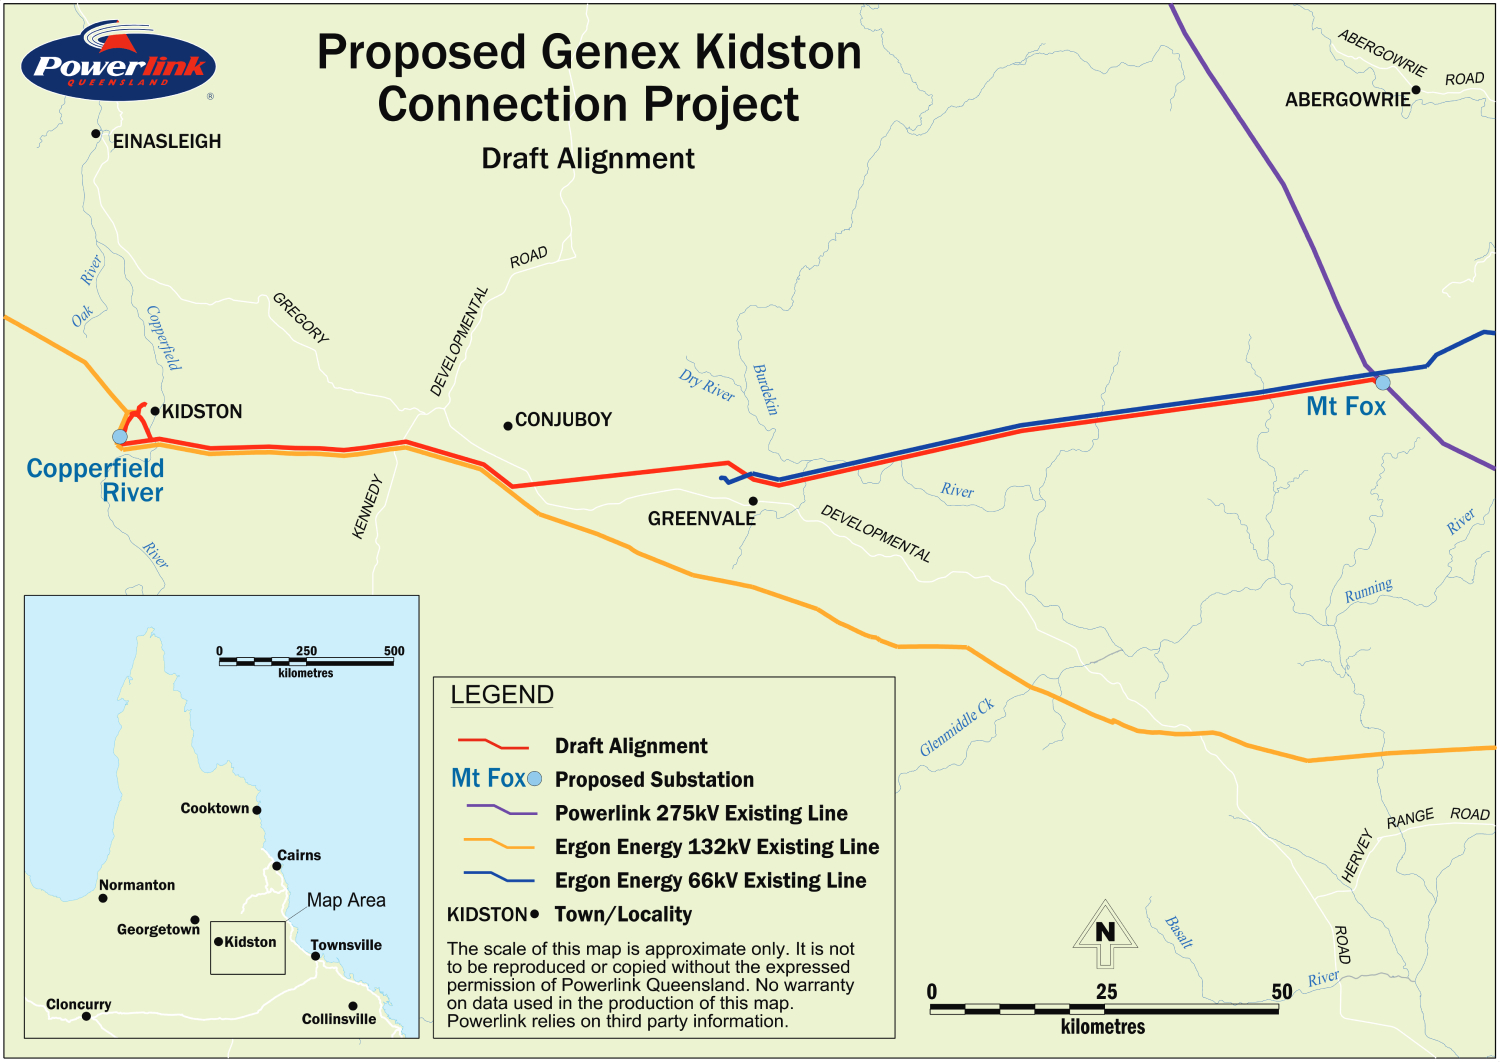 Proposed Genex Kidston Connection Project - Draft Alignment Map (1)